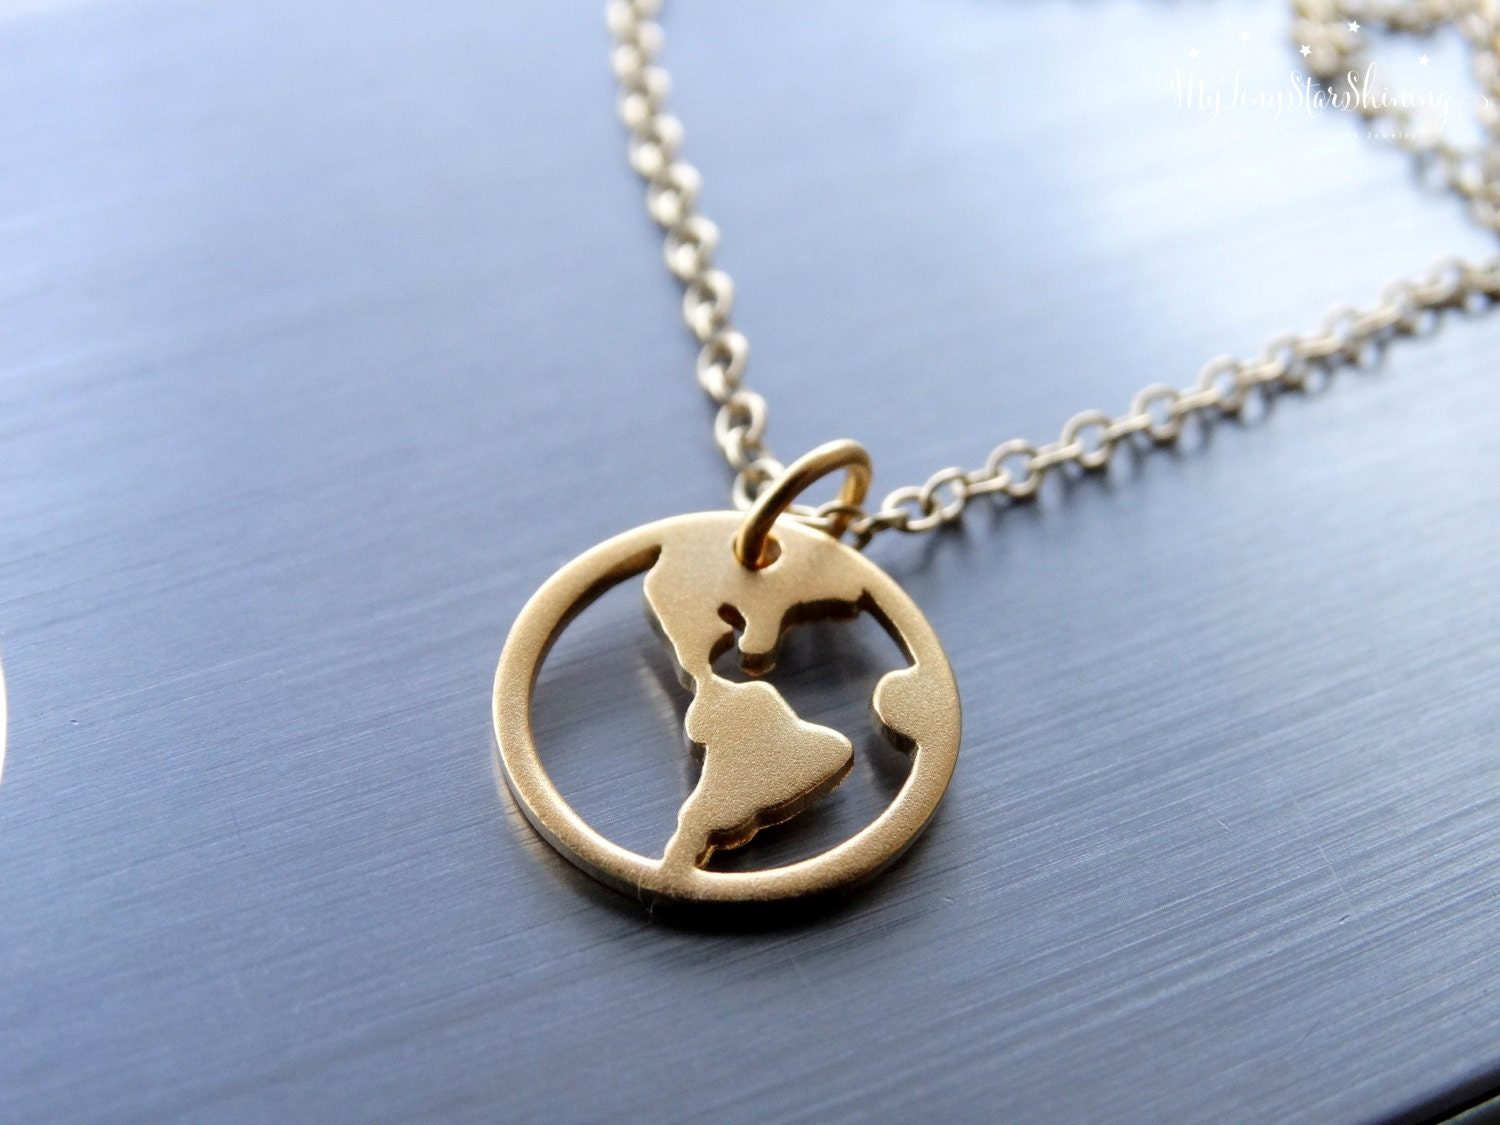 Gold world map necklace map necklace world charm necklace map gold world map necklace map necklace world charm necklace map jewelry travel necklace world map necklace gold filled necklace gumiabroncs Choice Image